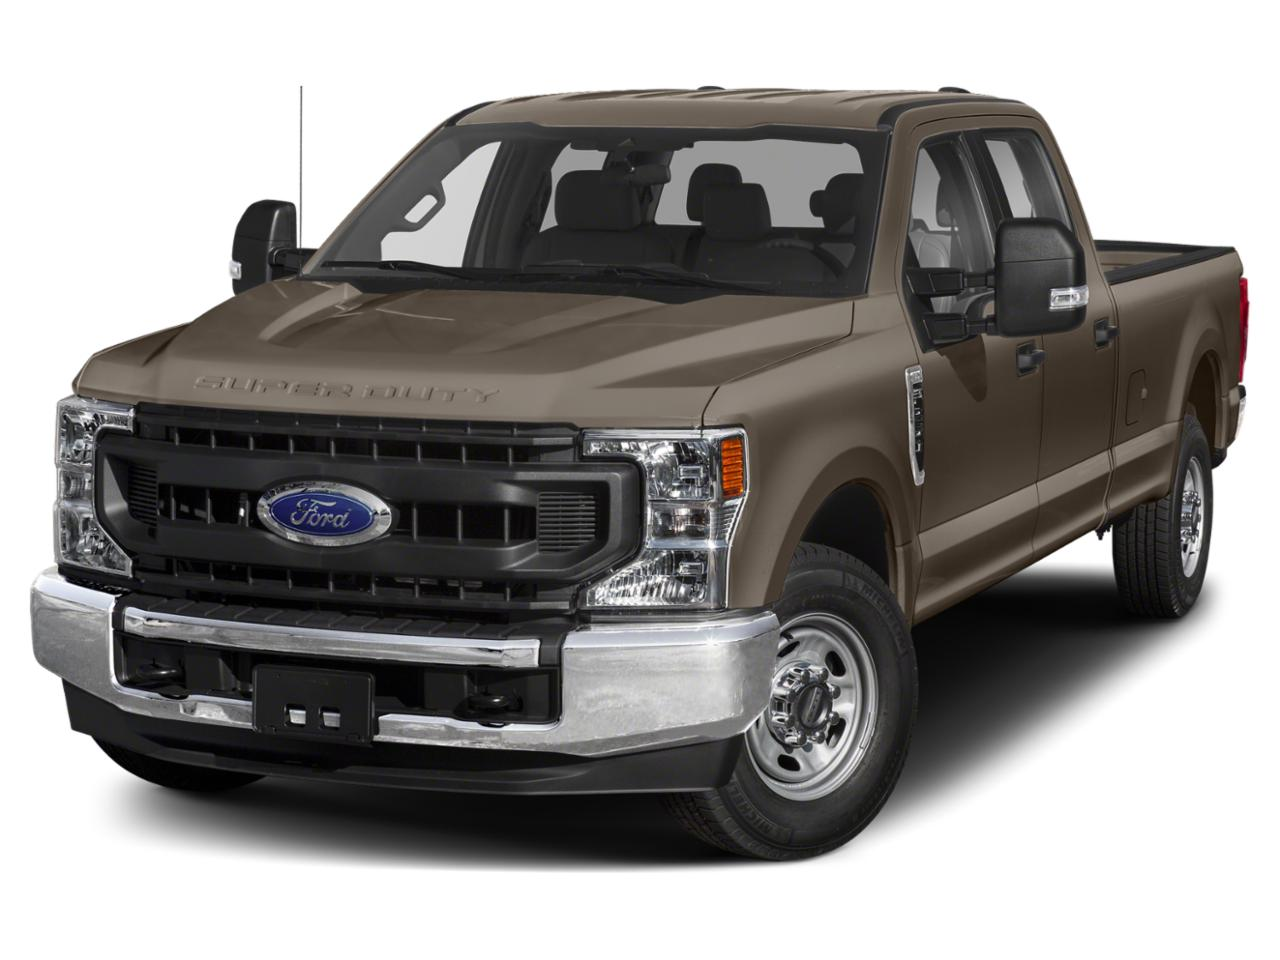 2020 Ford Super Duty F-250 SRW Vehicle Photo in MIDDLETON, WI 53562-1492